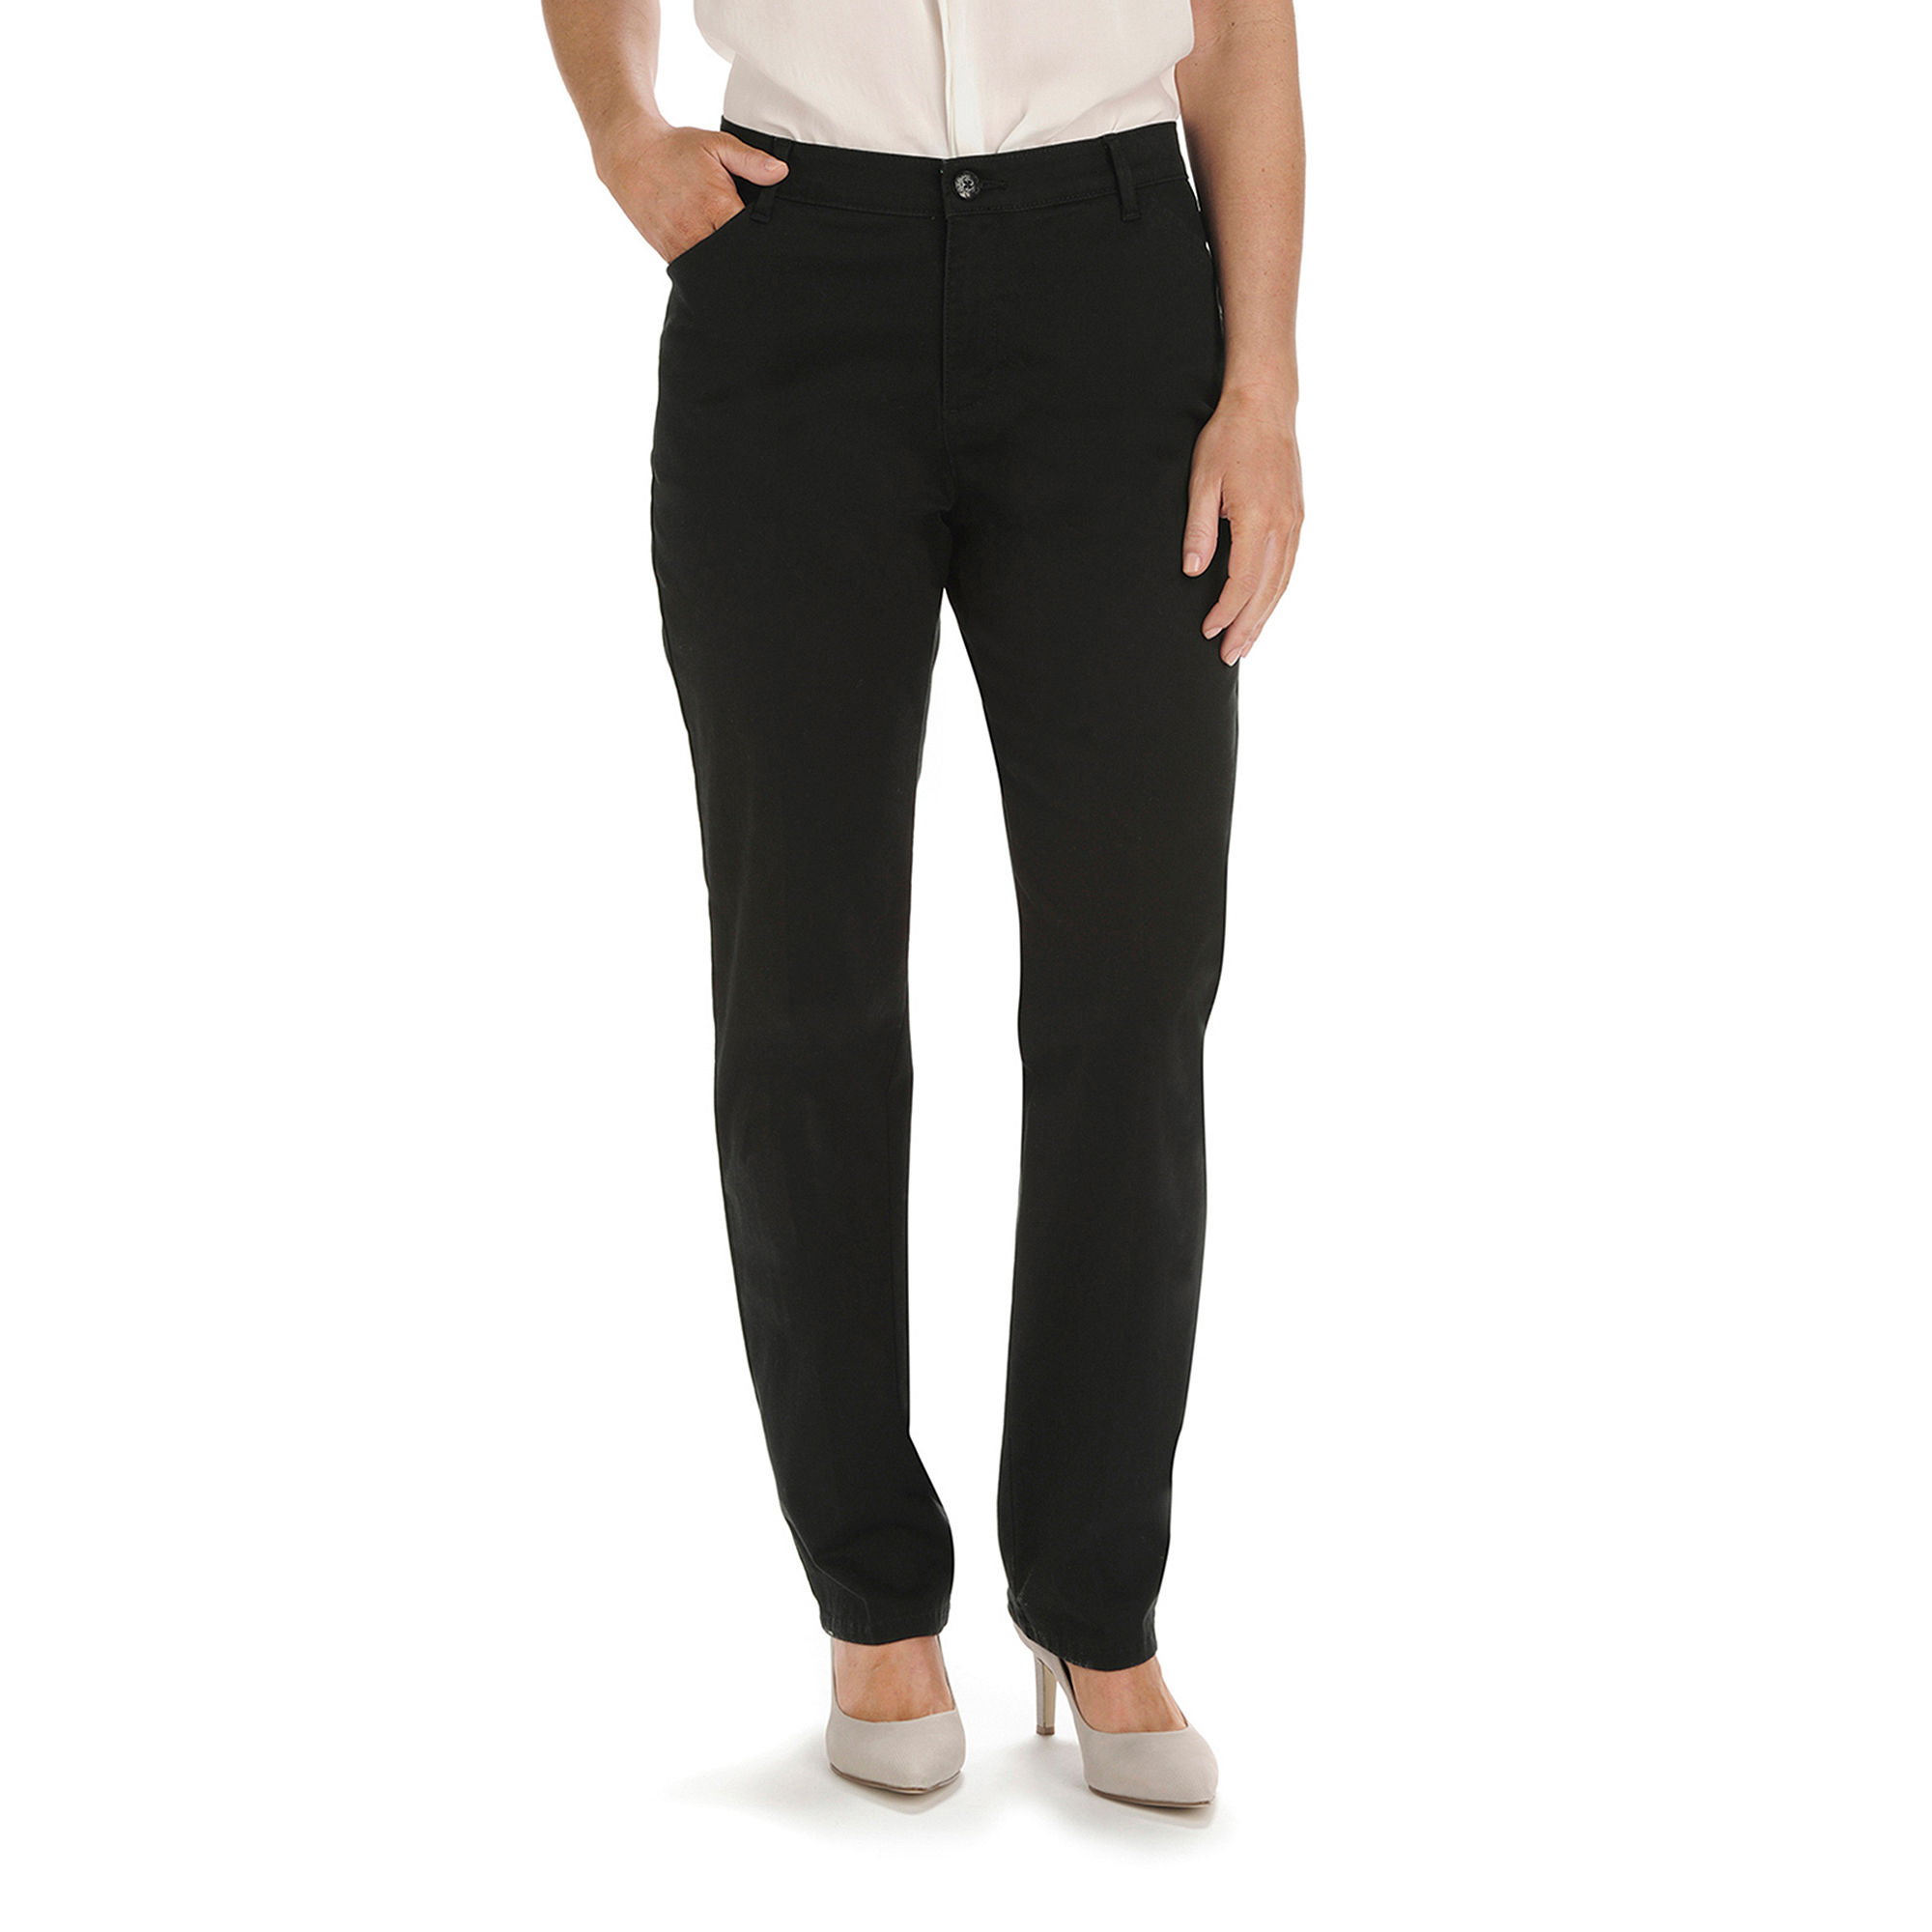 Lee Plain Front All Day Pants